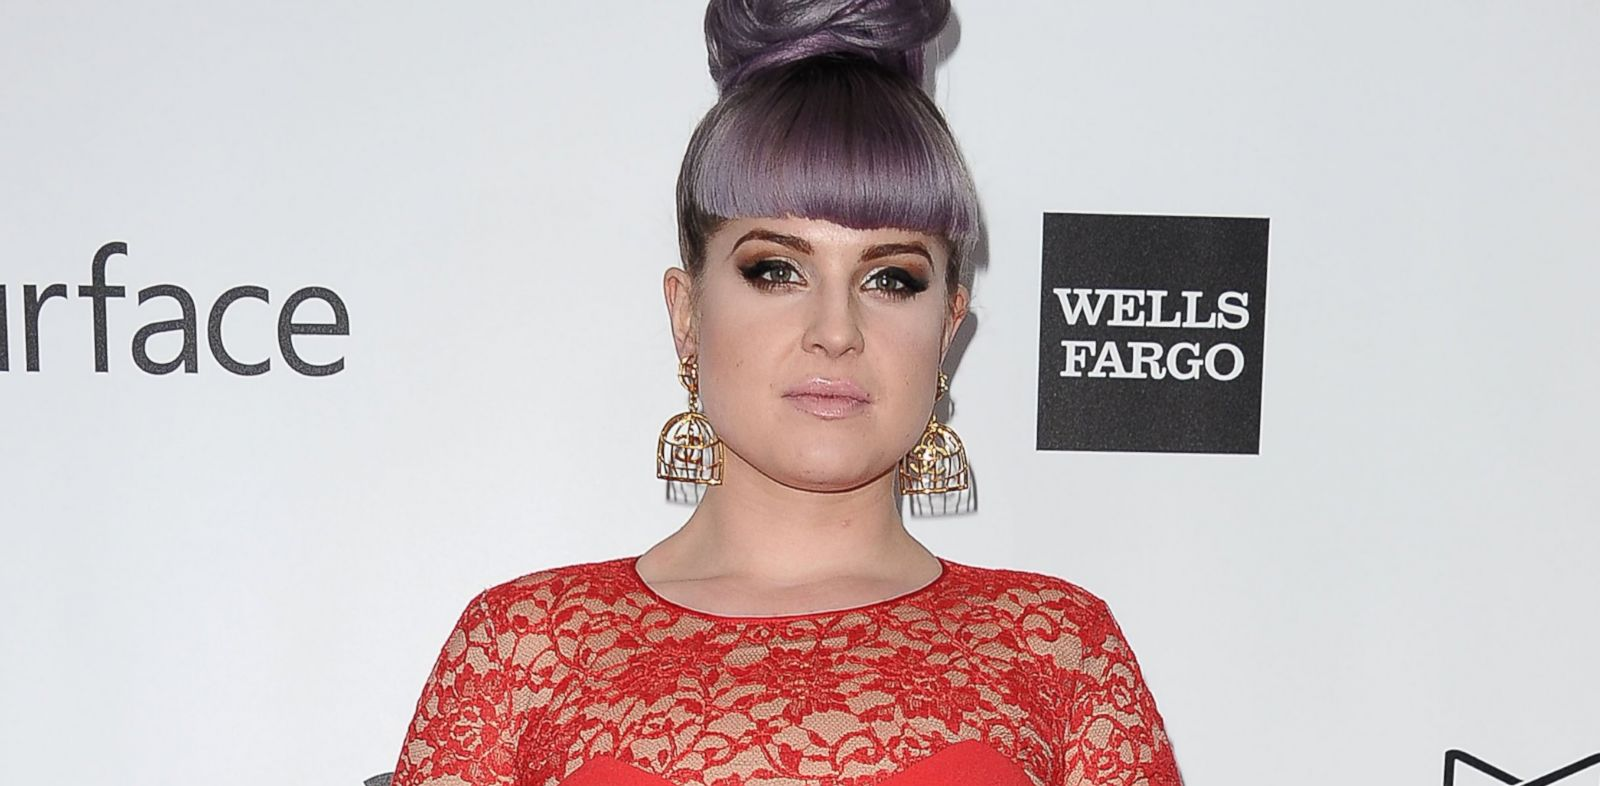 PHOTO: In this file photo, Kelly Osbourne attends the amfAR Inspiration Gala on Dec. 12, 2013 in Hollywood, Calif.